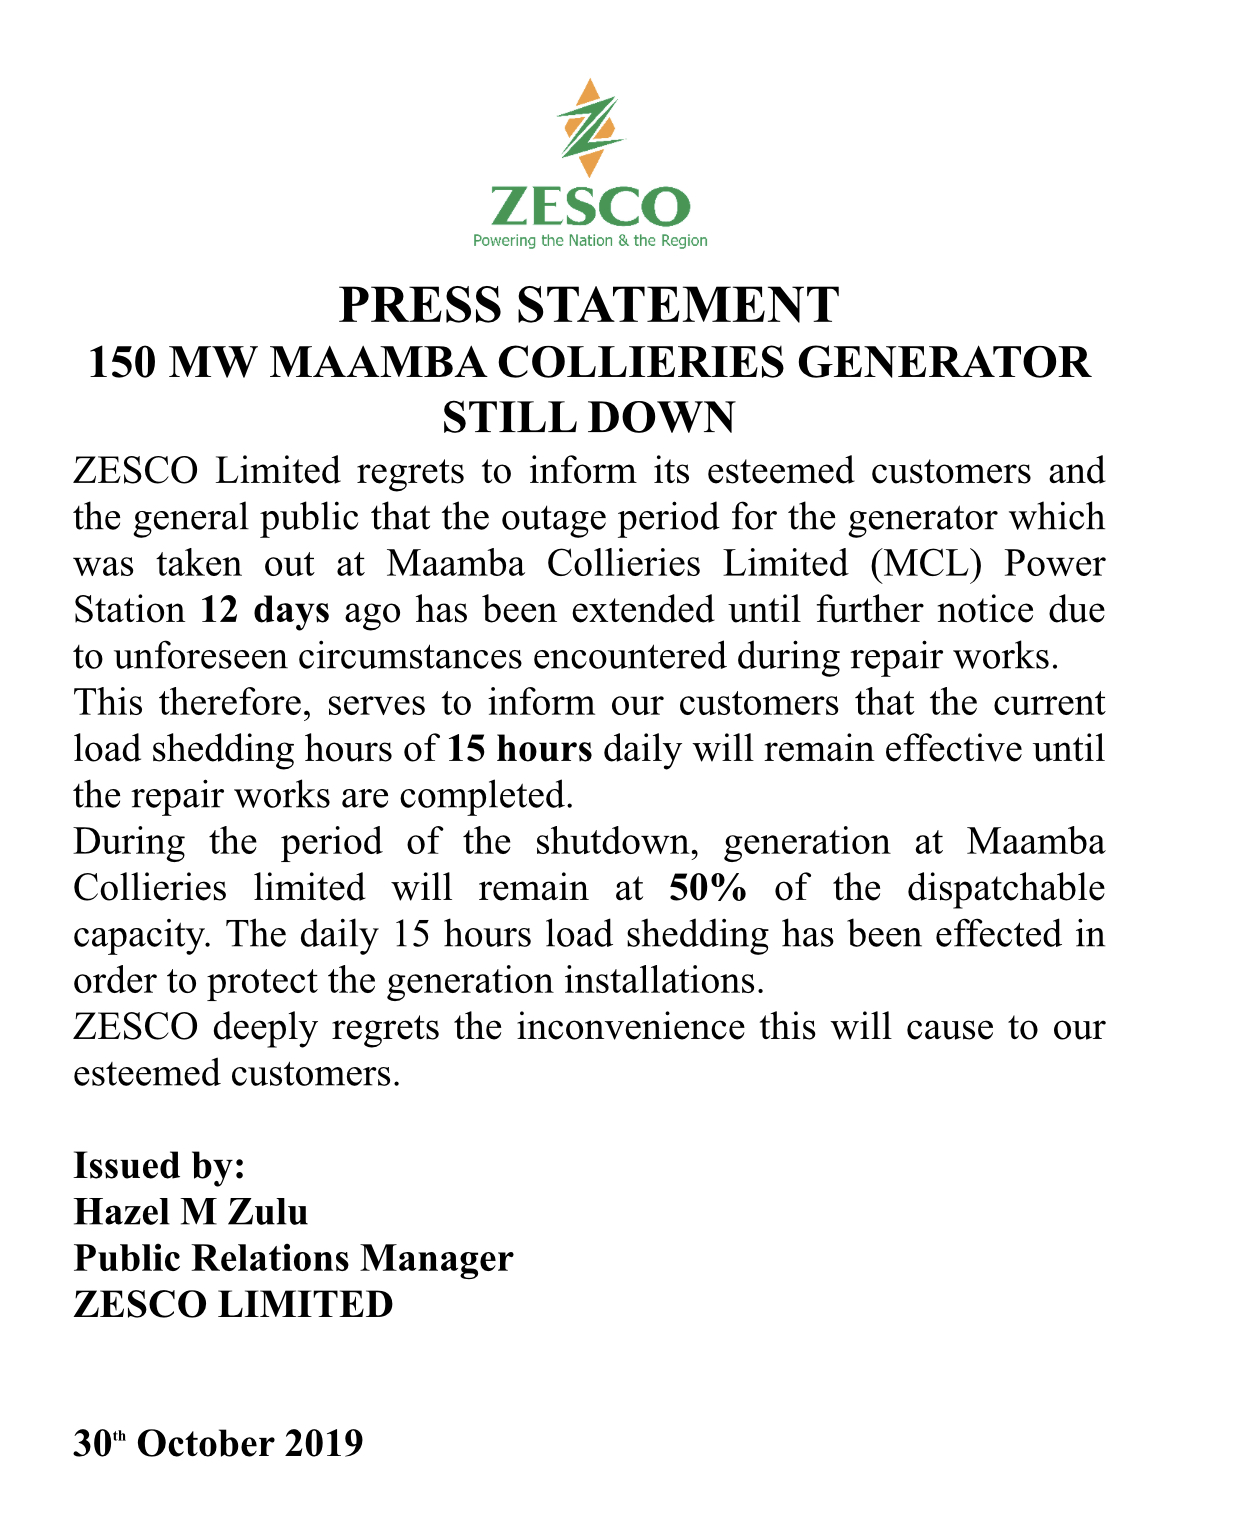 Maamba collieries says Zesco not being truth